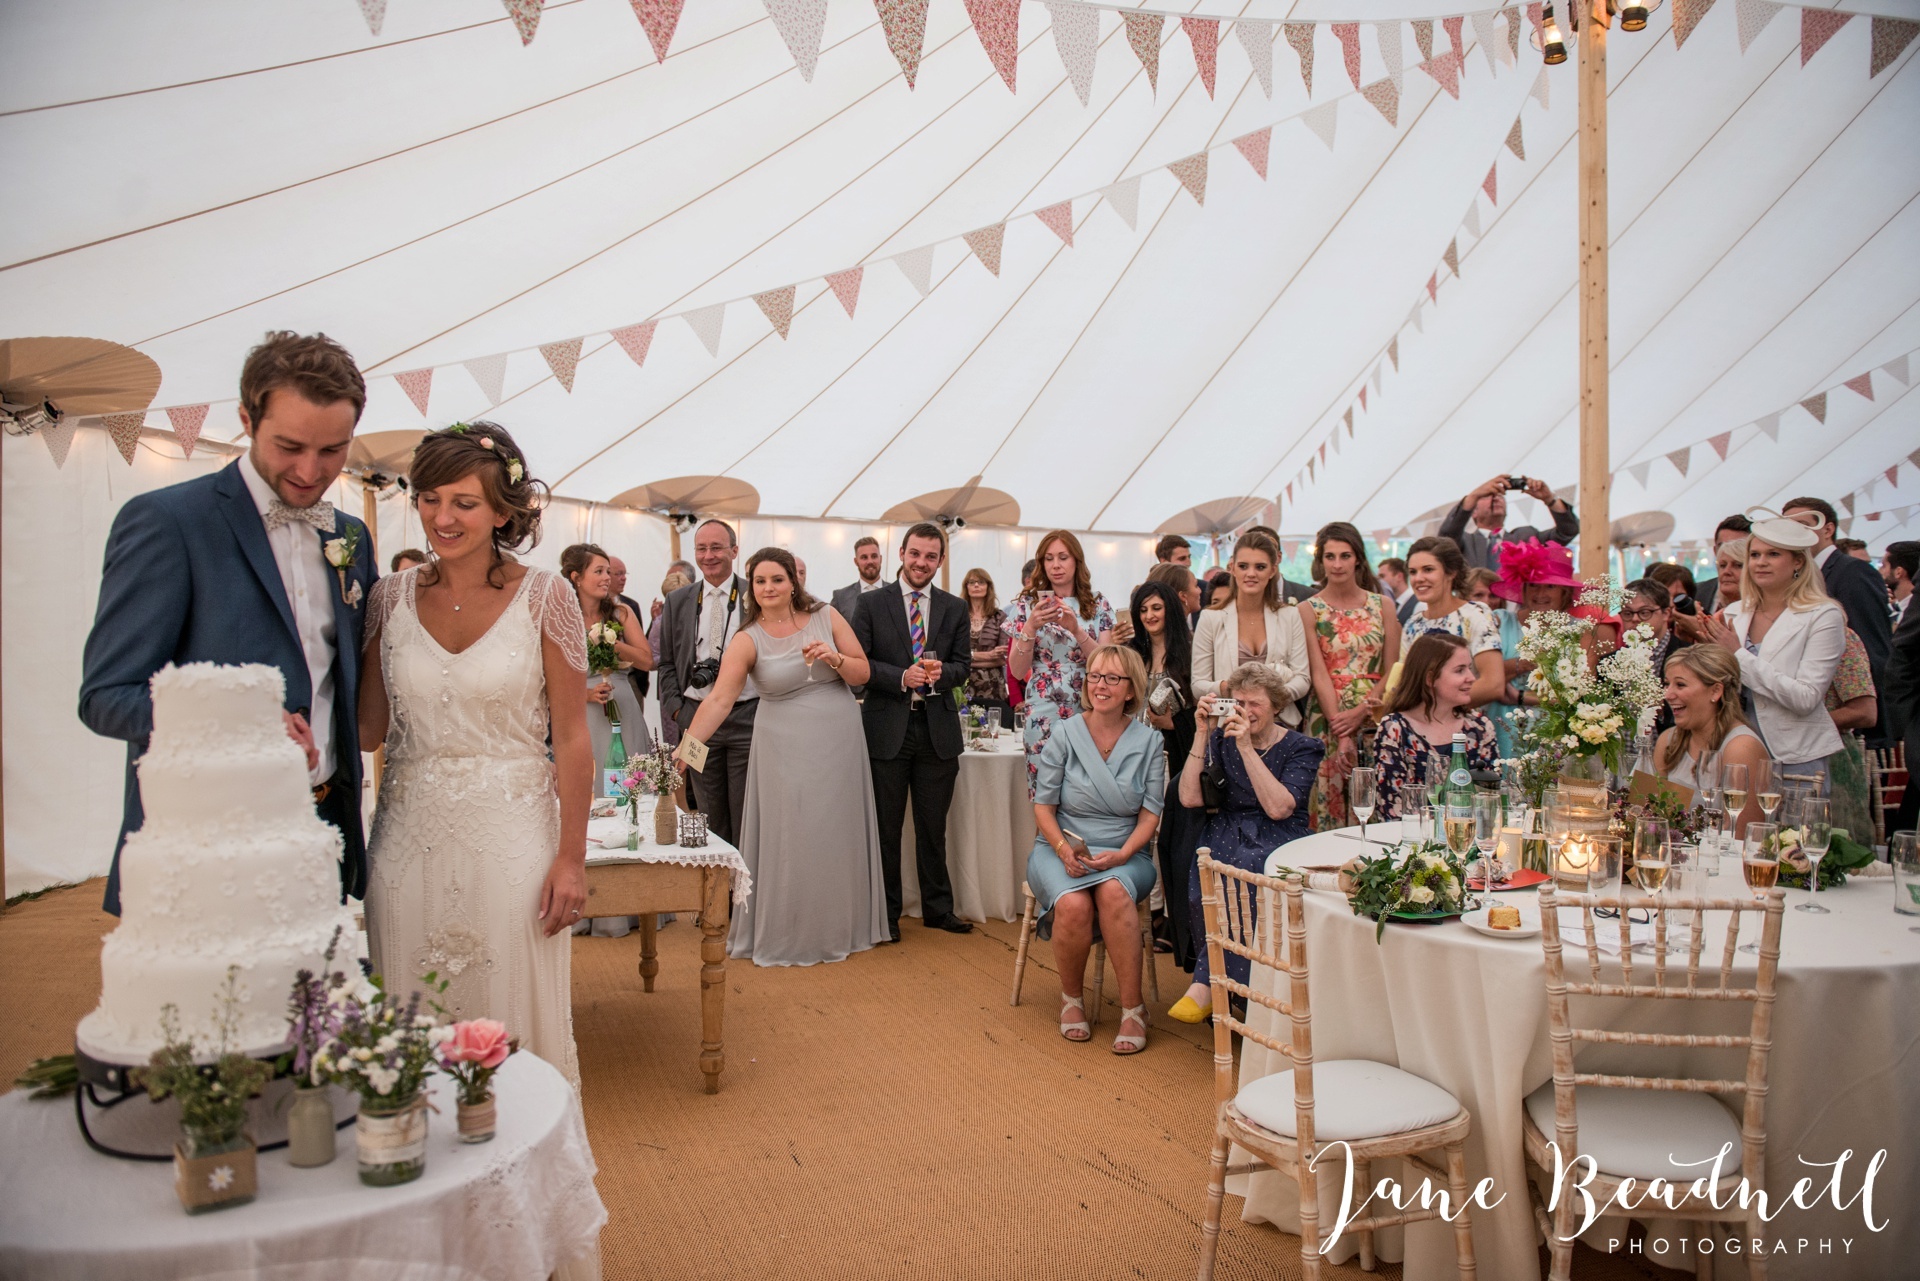 Jane Beadnell fine art wedding photographer Leeds_0127